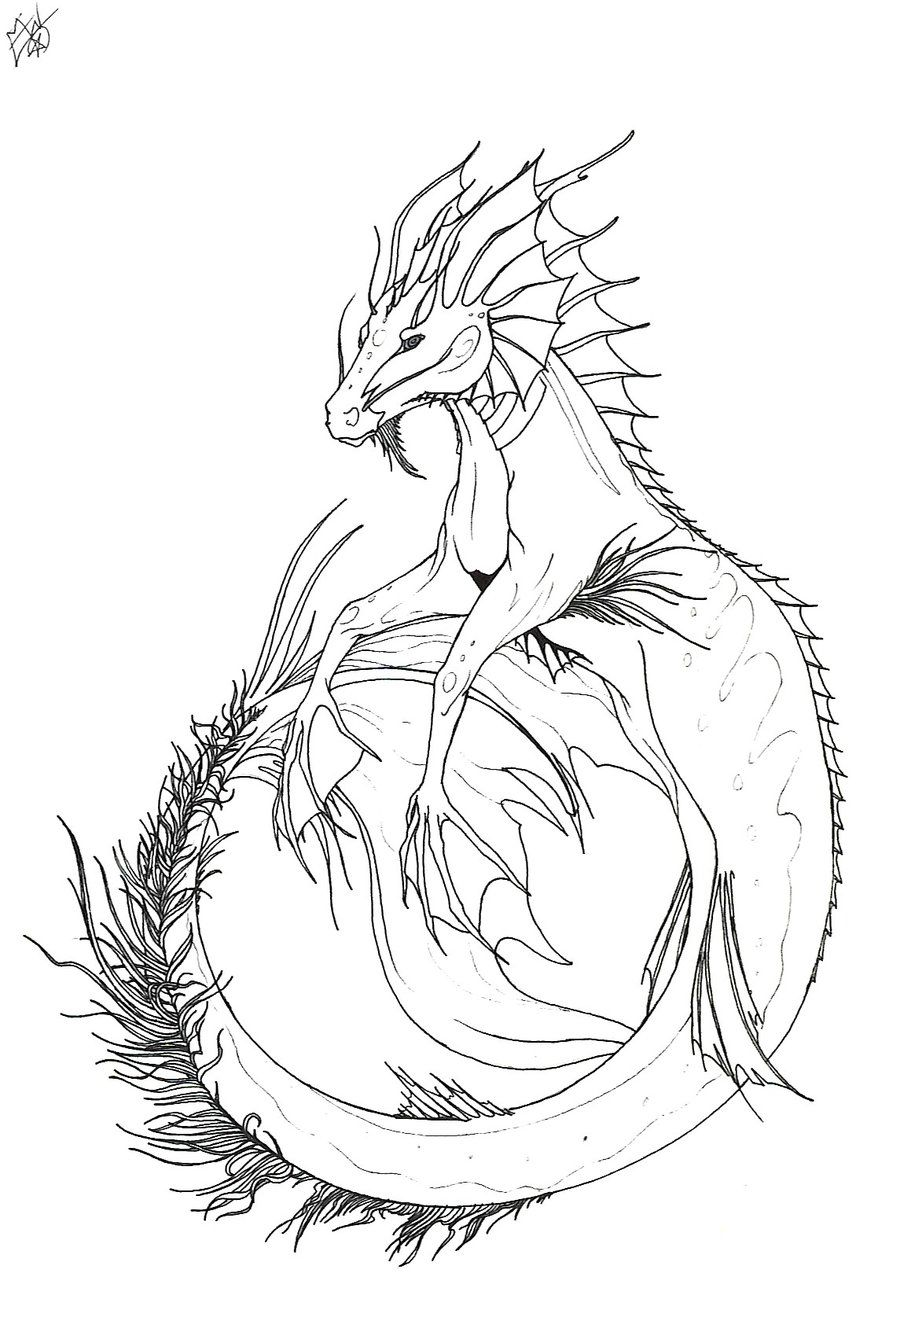 Tropical Hippocampus By Dark Wolfess09 On Deviantart Dragon Coloring Page Dragon Sketch Drawings